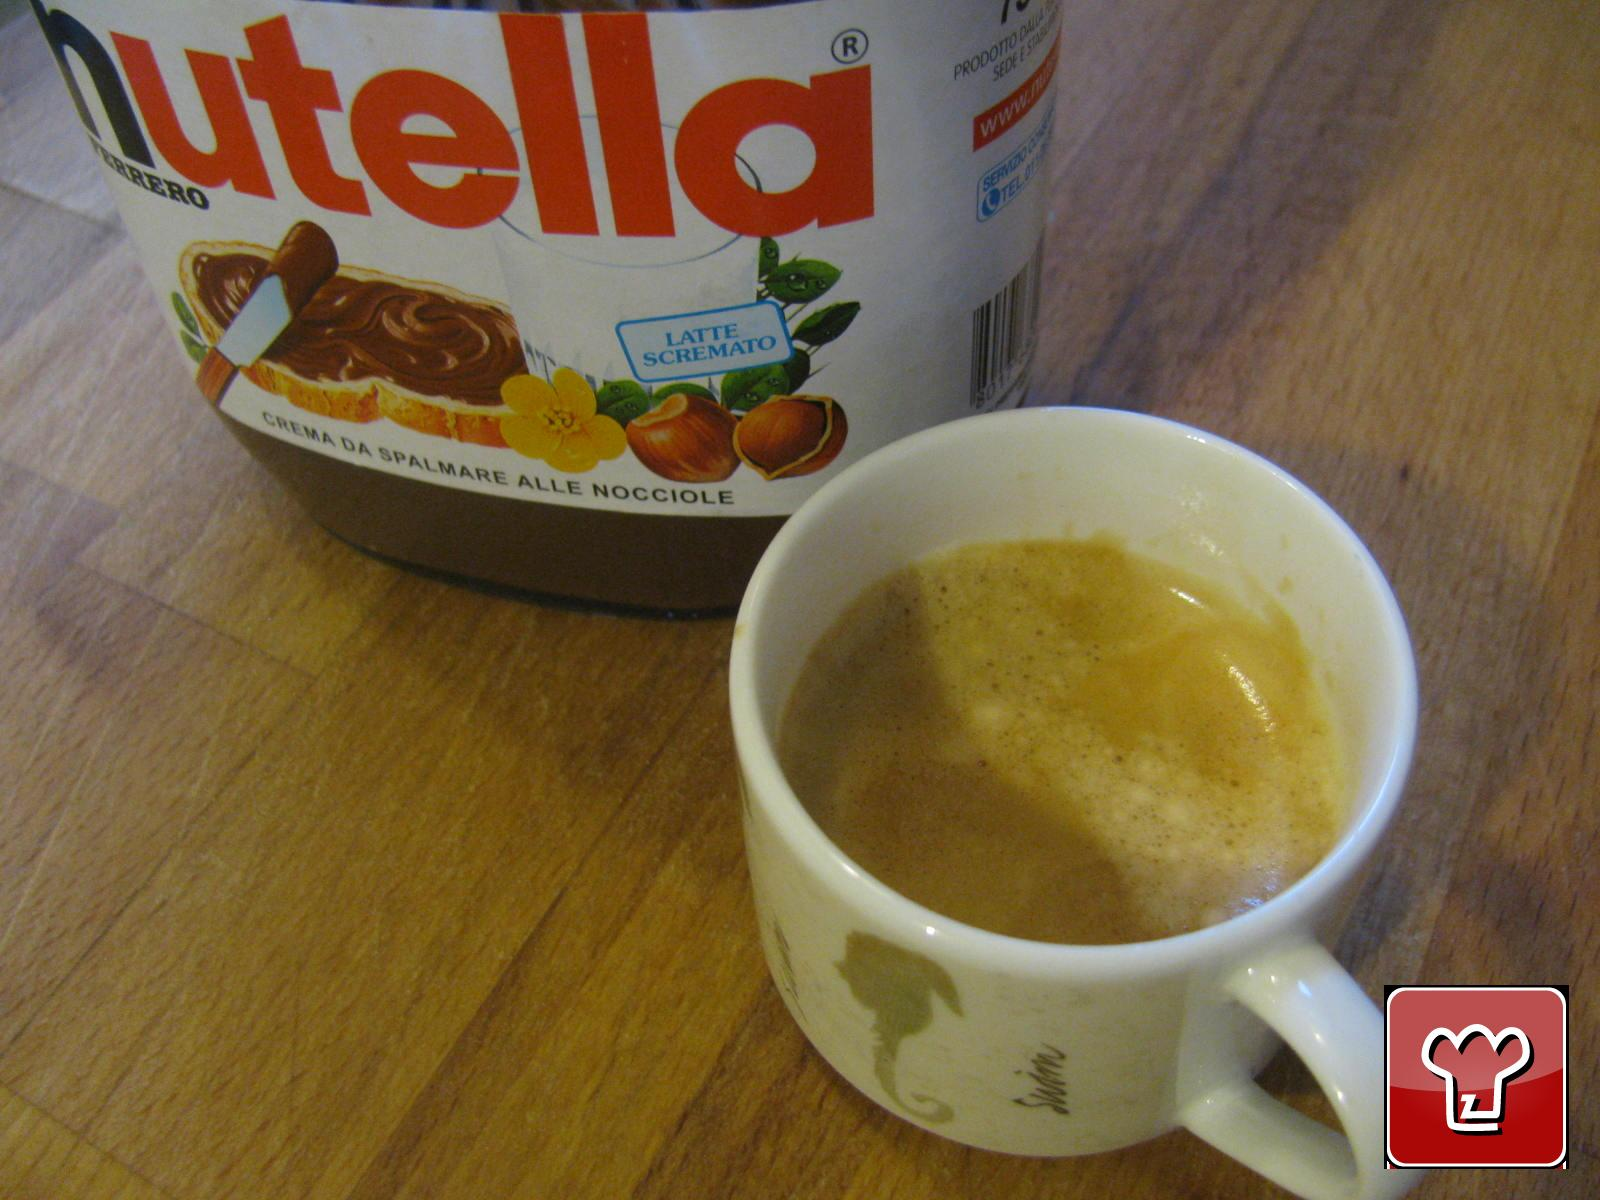 The ingredients: Nutella and coffee